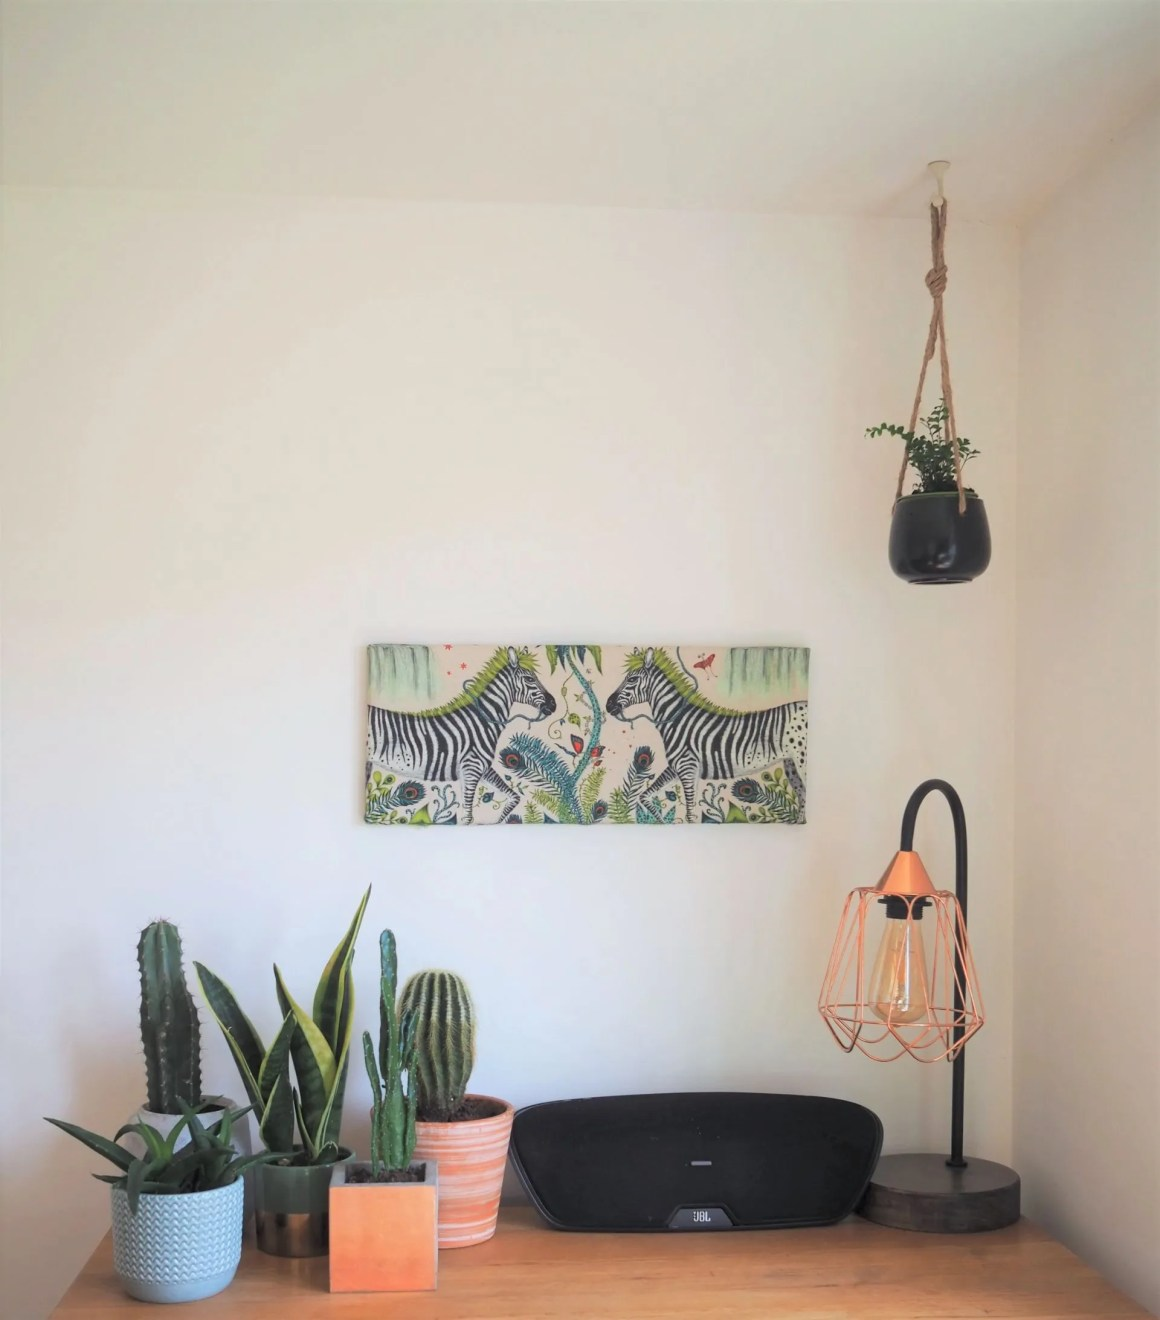 cactus plants and canvas picture of zebras with fabric by Emma J Shipley